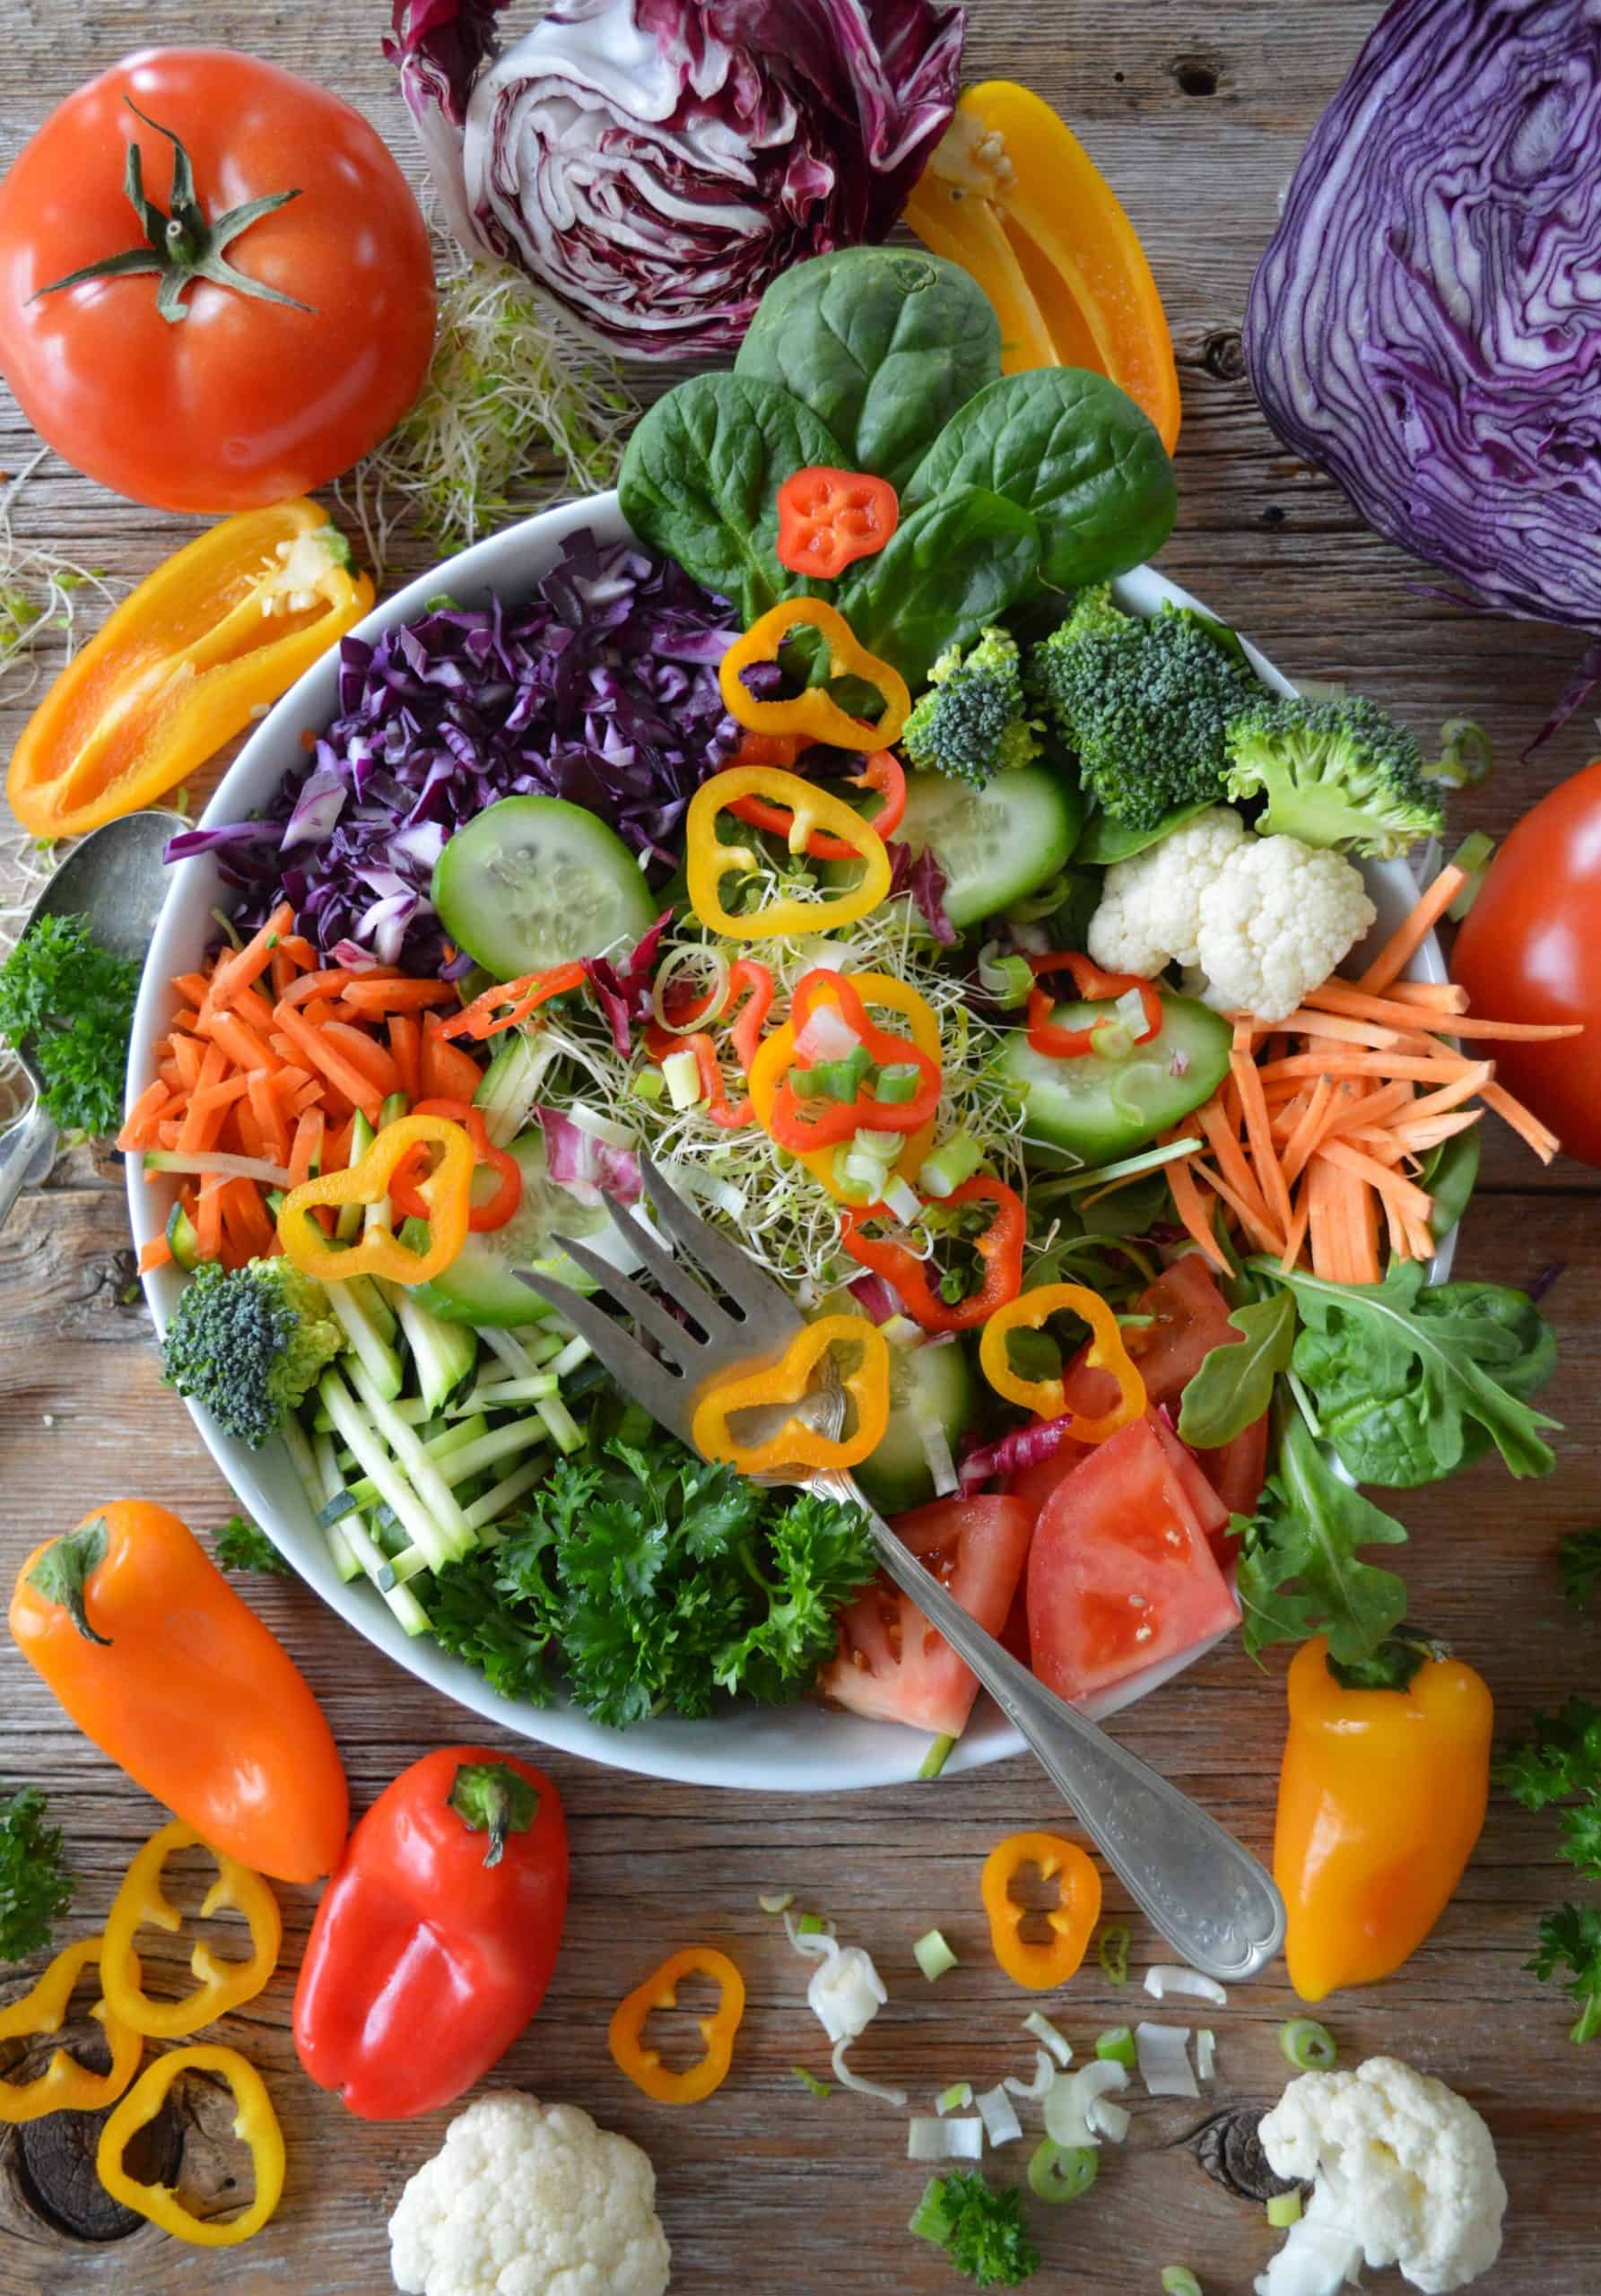 Differences Between A Vegetarian And Vegan Diet